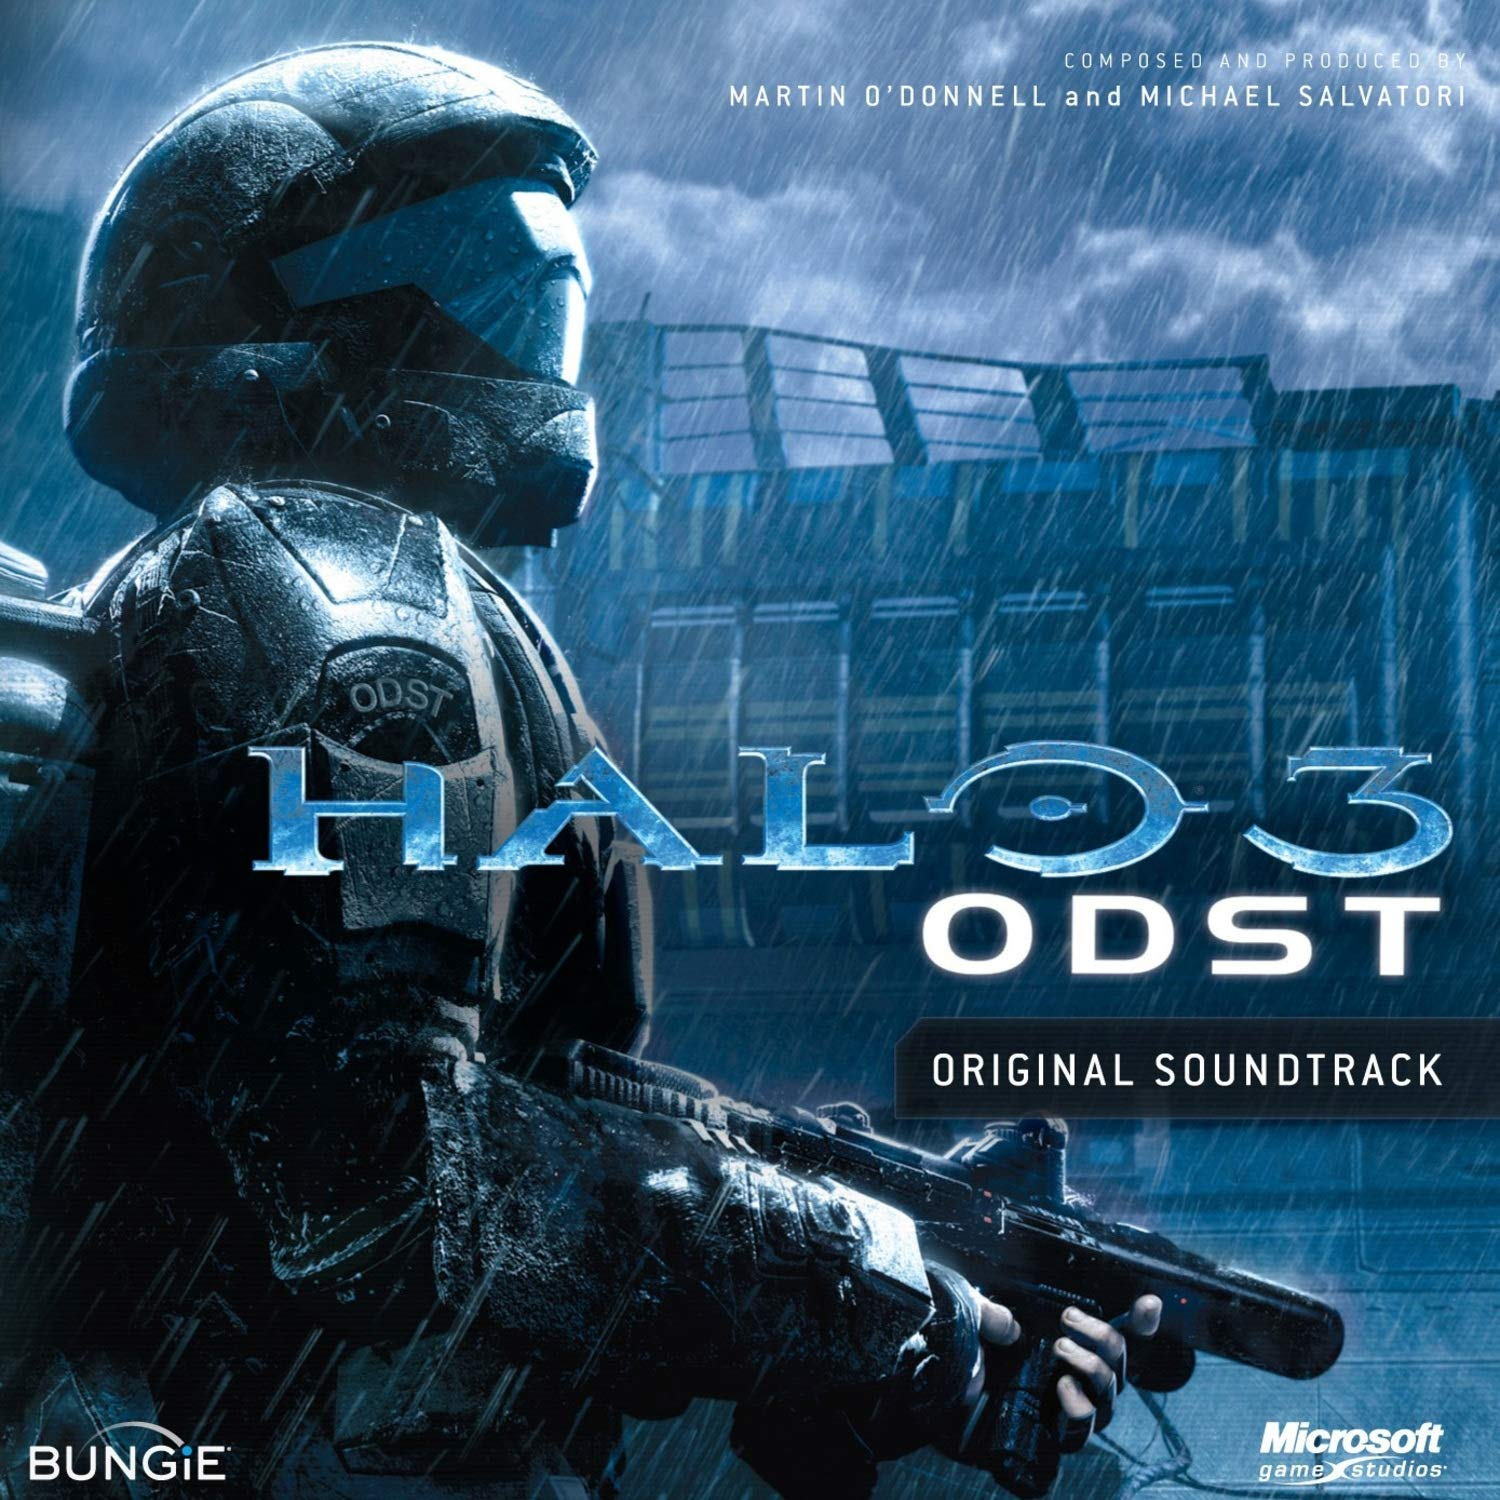 Halo 3: ODST Soundtrack Various Artists Martin O'Donnell Universal Music Canada Pop